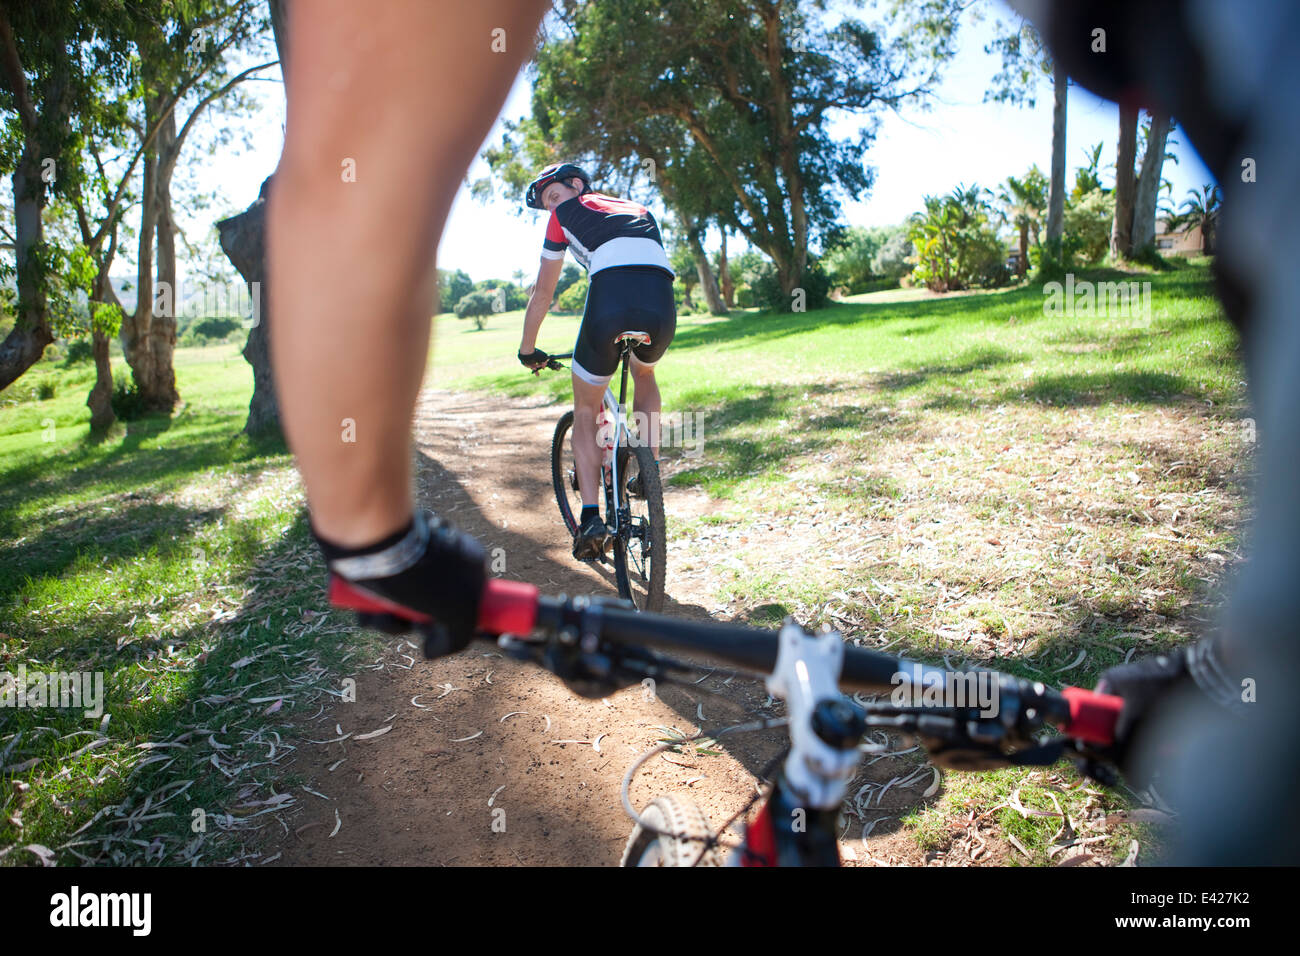 Male cyclist riding ahead of partner - Stock Image